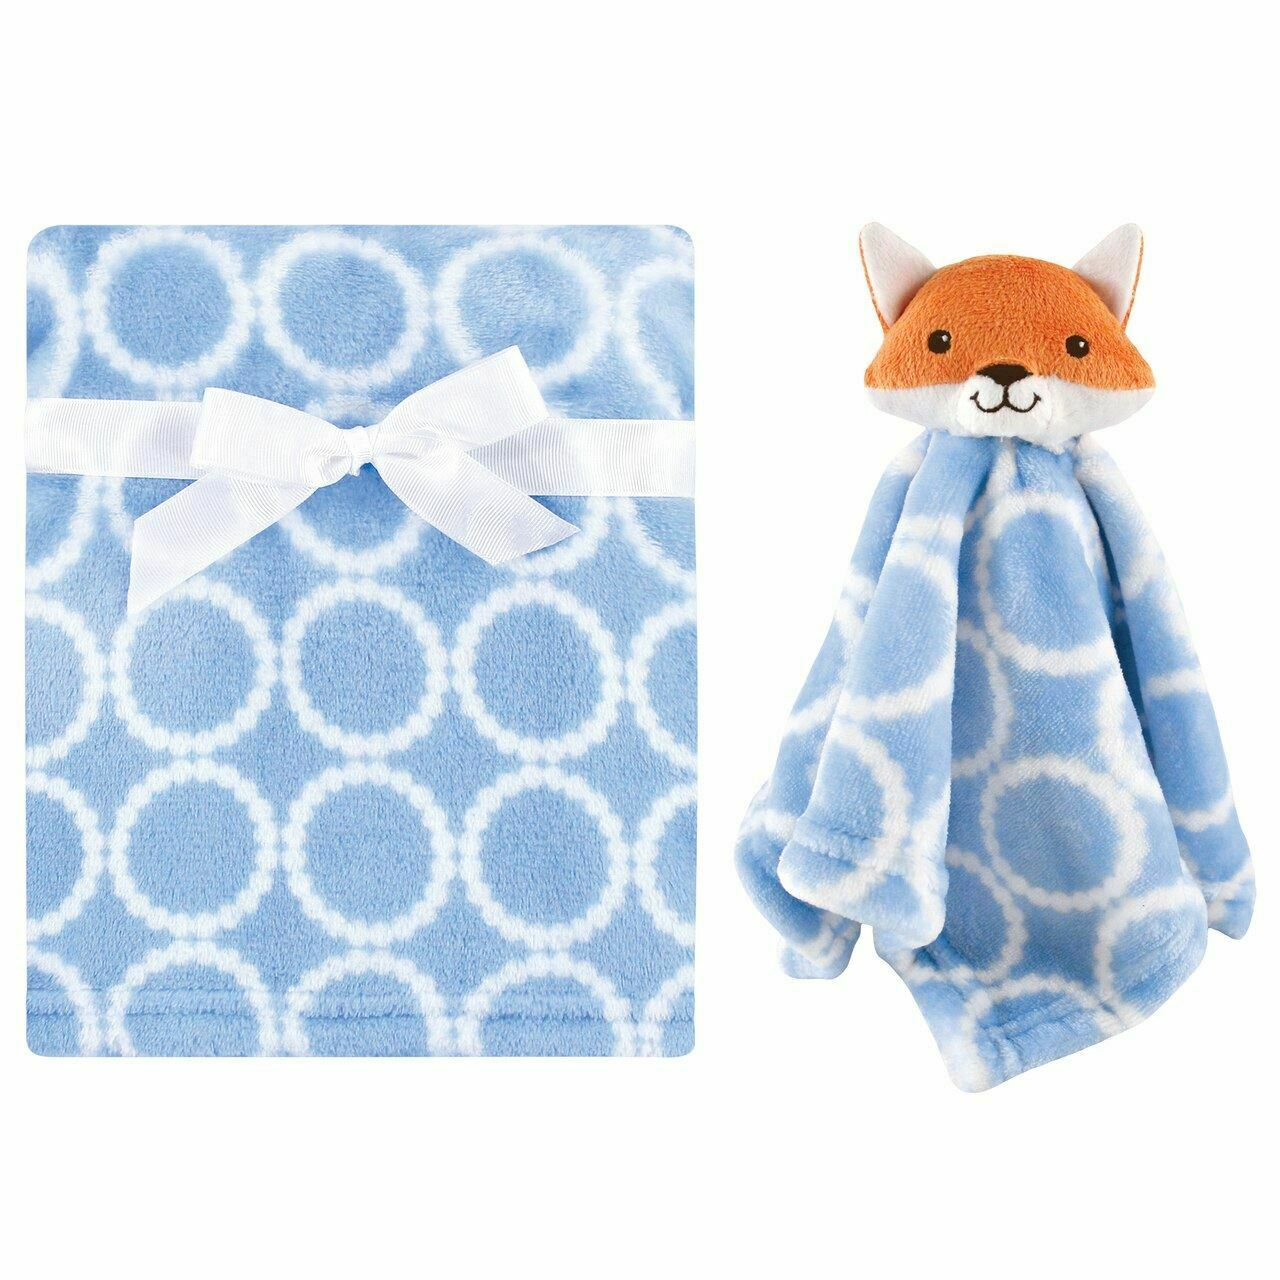 Hudson Baby Boys Blue Blanket and Plush Fox Security Blanket Lovey Set-baby shower gifts, fox, plush fox, lovie, lovey, lovies, loveys, baby toys, baby blankets, gifts for boys